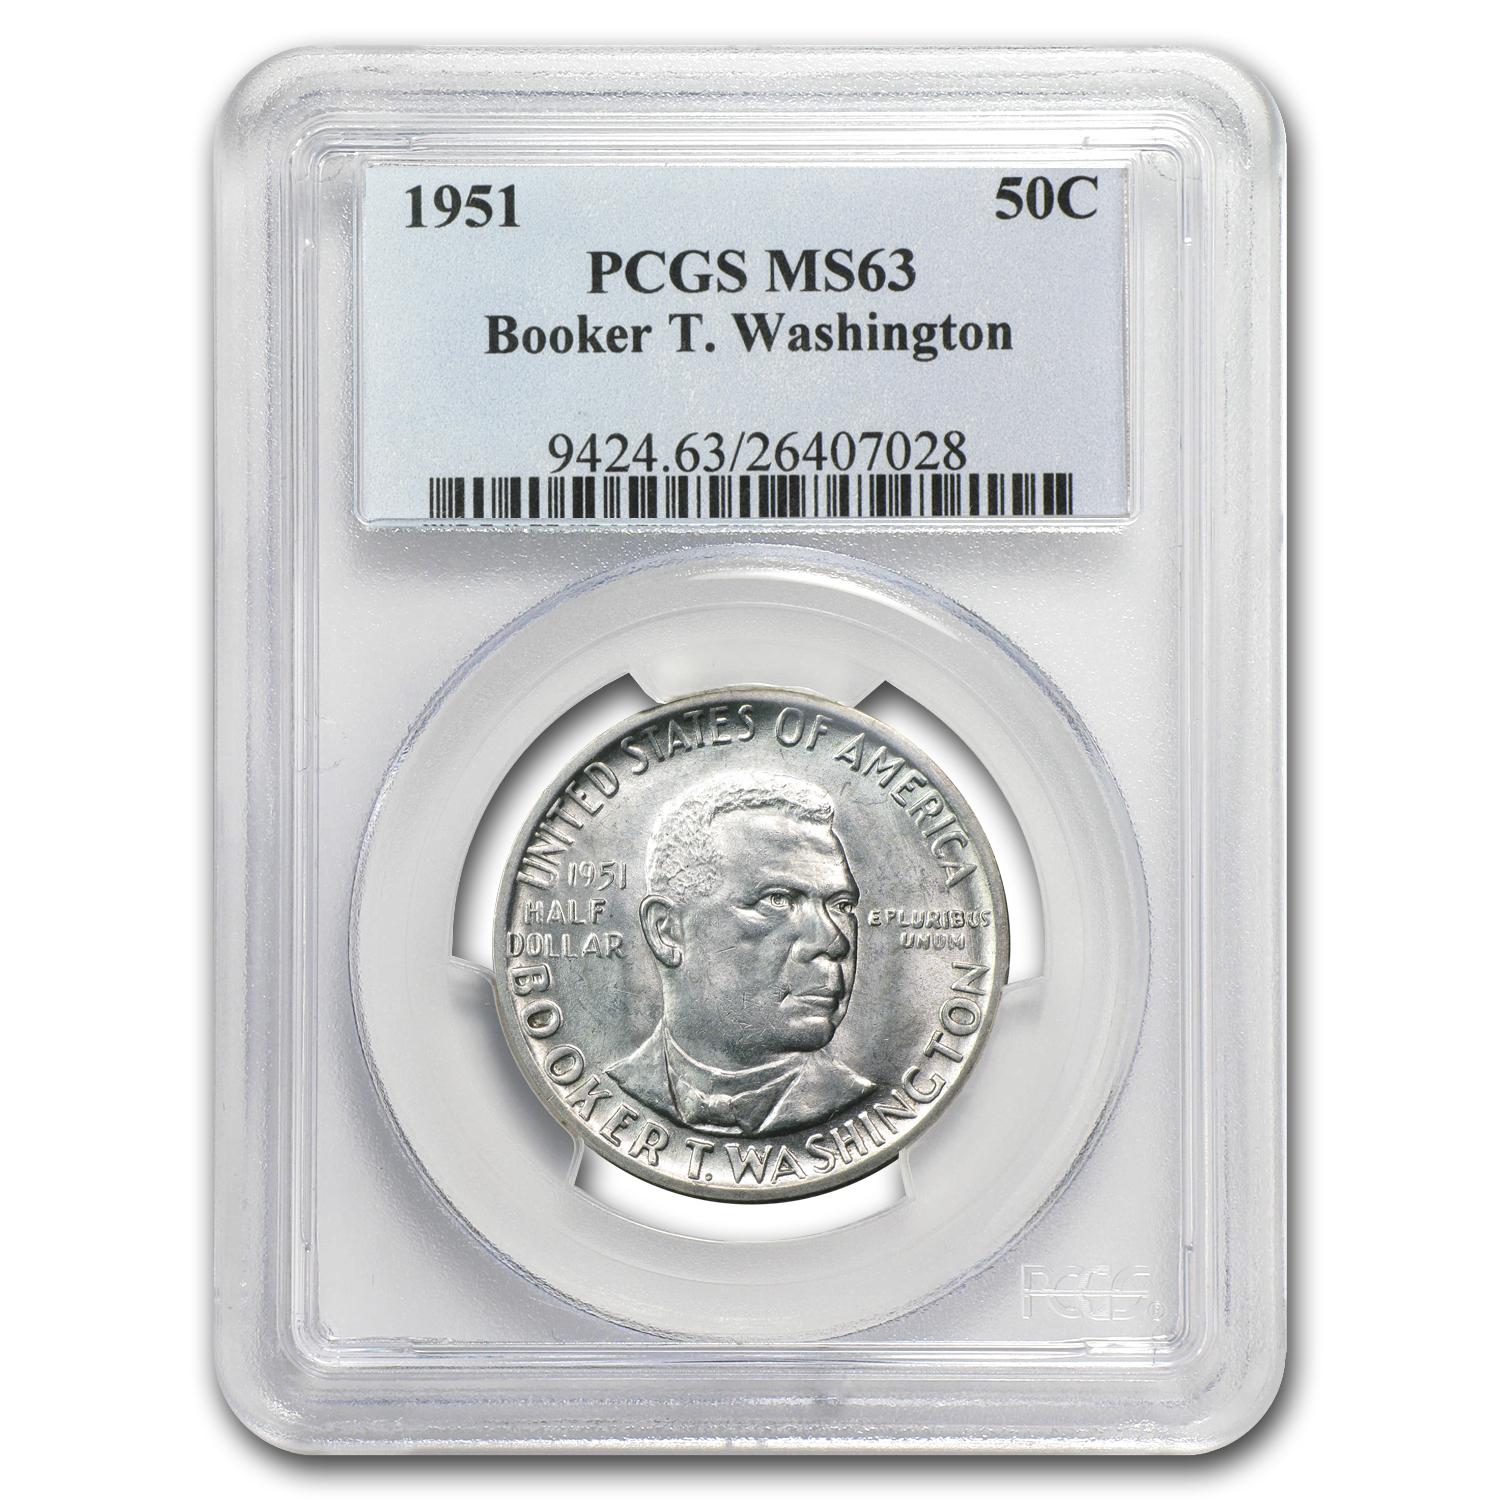 1951 Booker T. Washington MS-63 PCGS